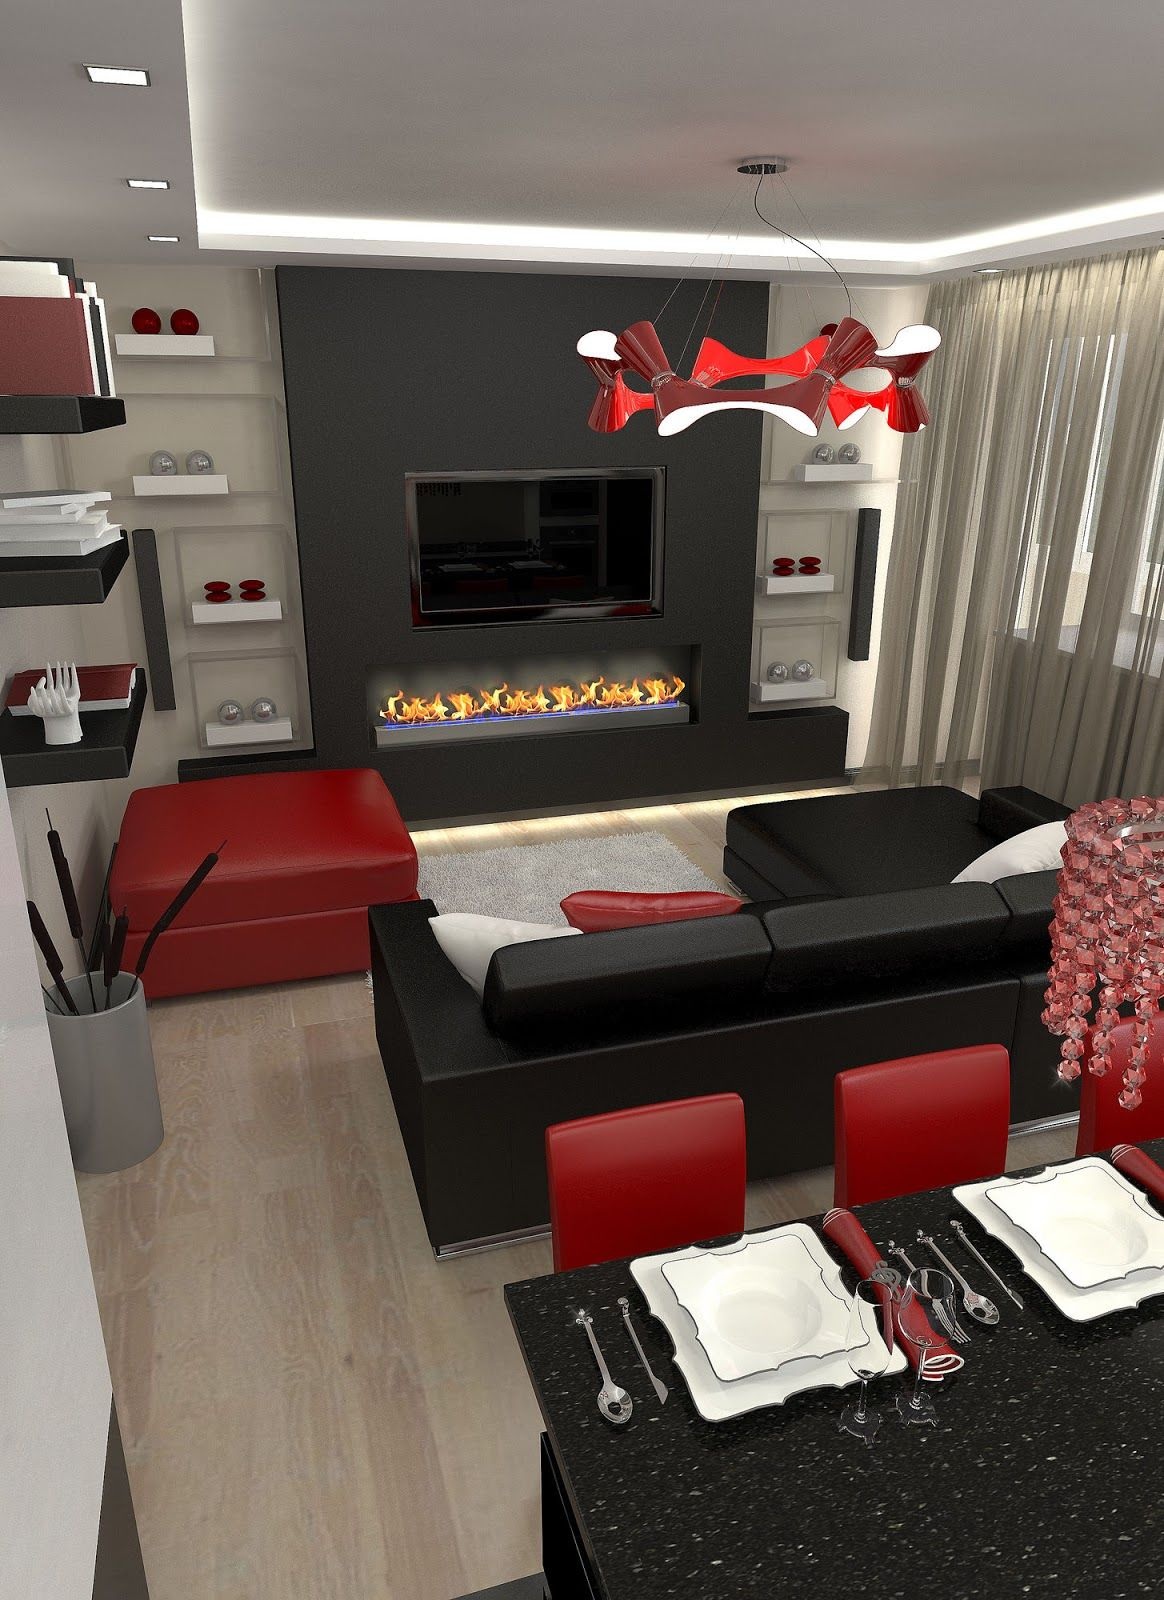 30 Black And White Decor Ideas For A Super Chic Space 100 Home Decor Ideas Red Living Room Decor Black And Red Living Room Black Living Room Decor #red #and #gold #living #room